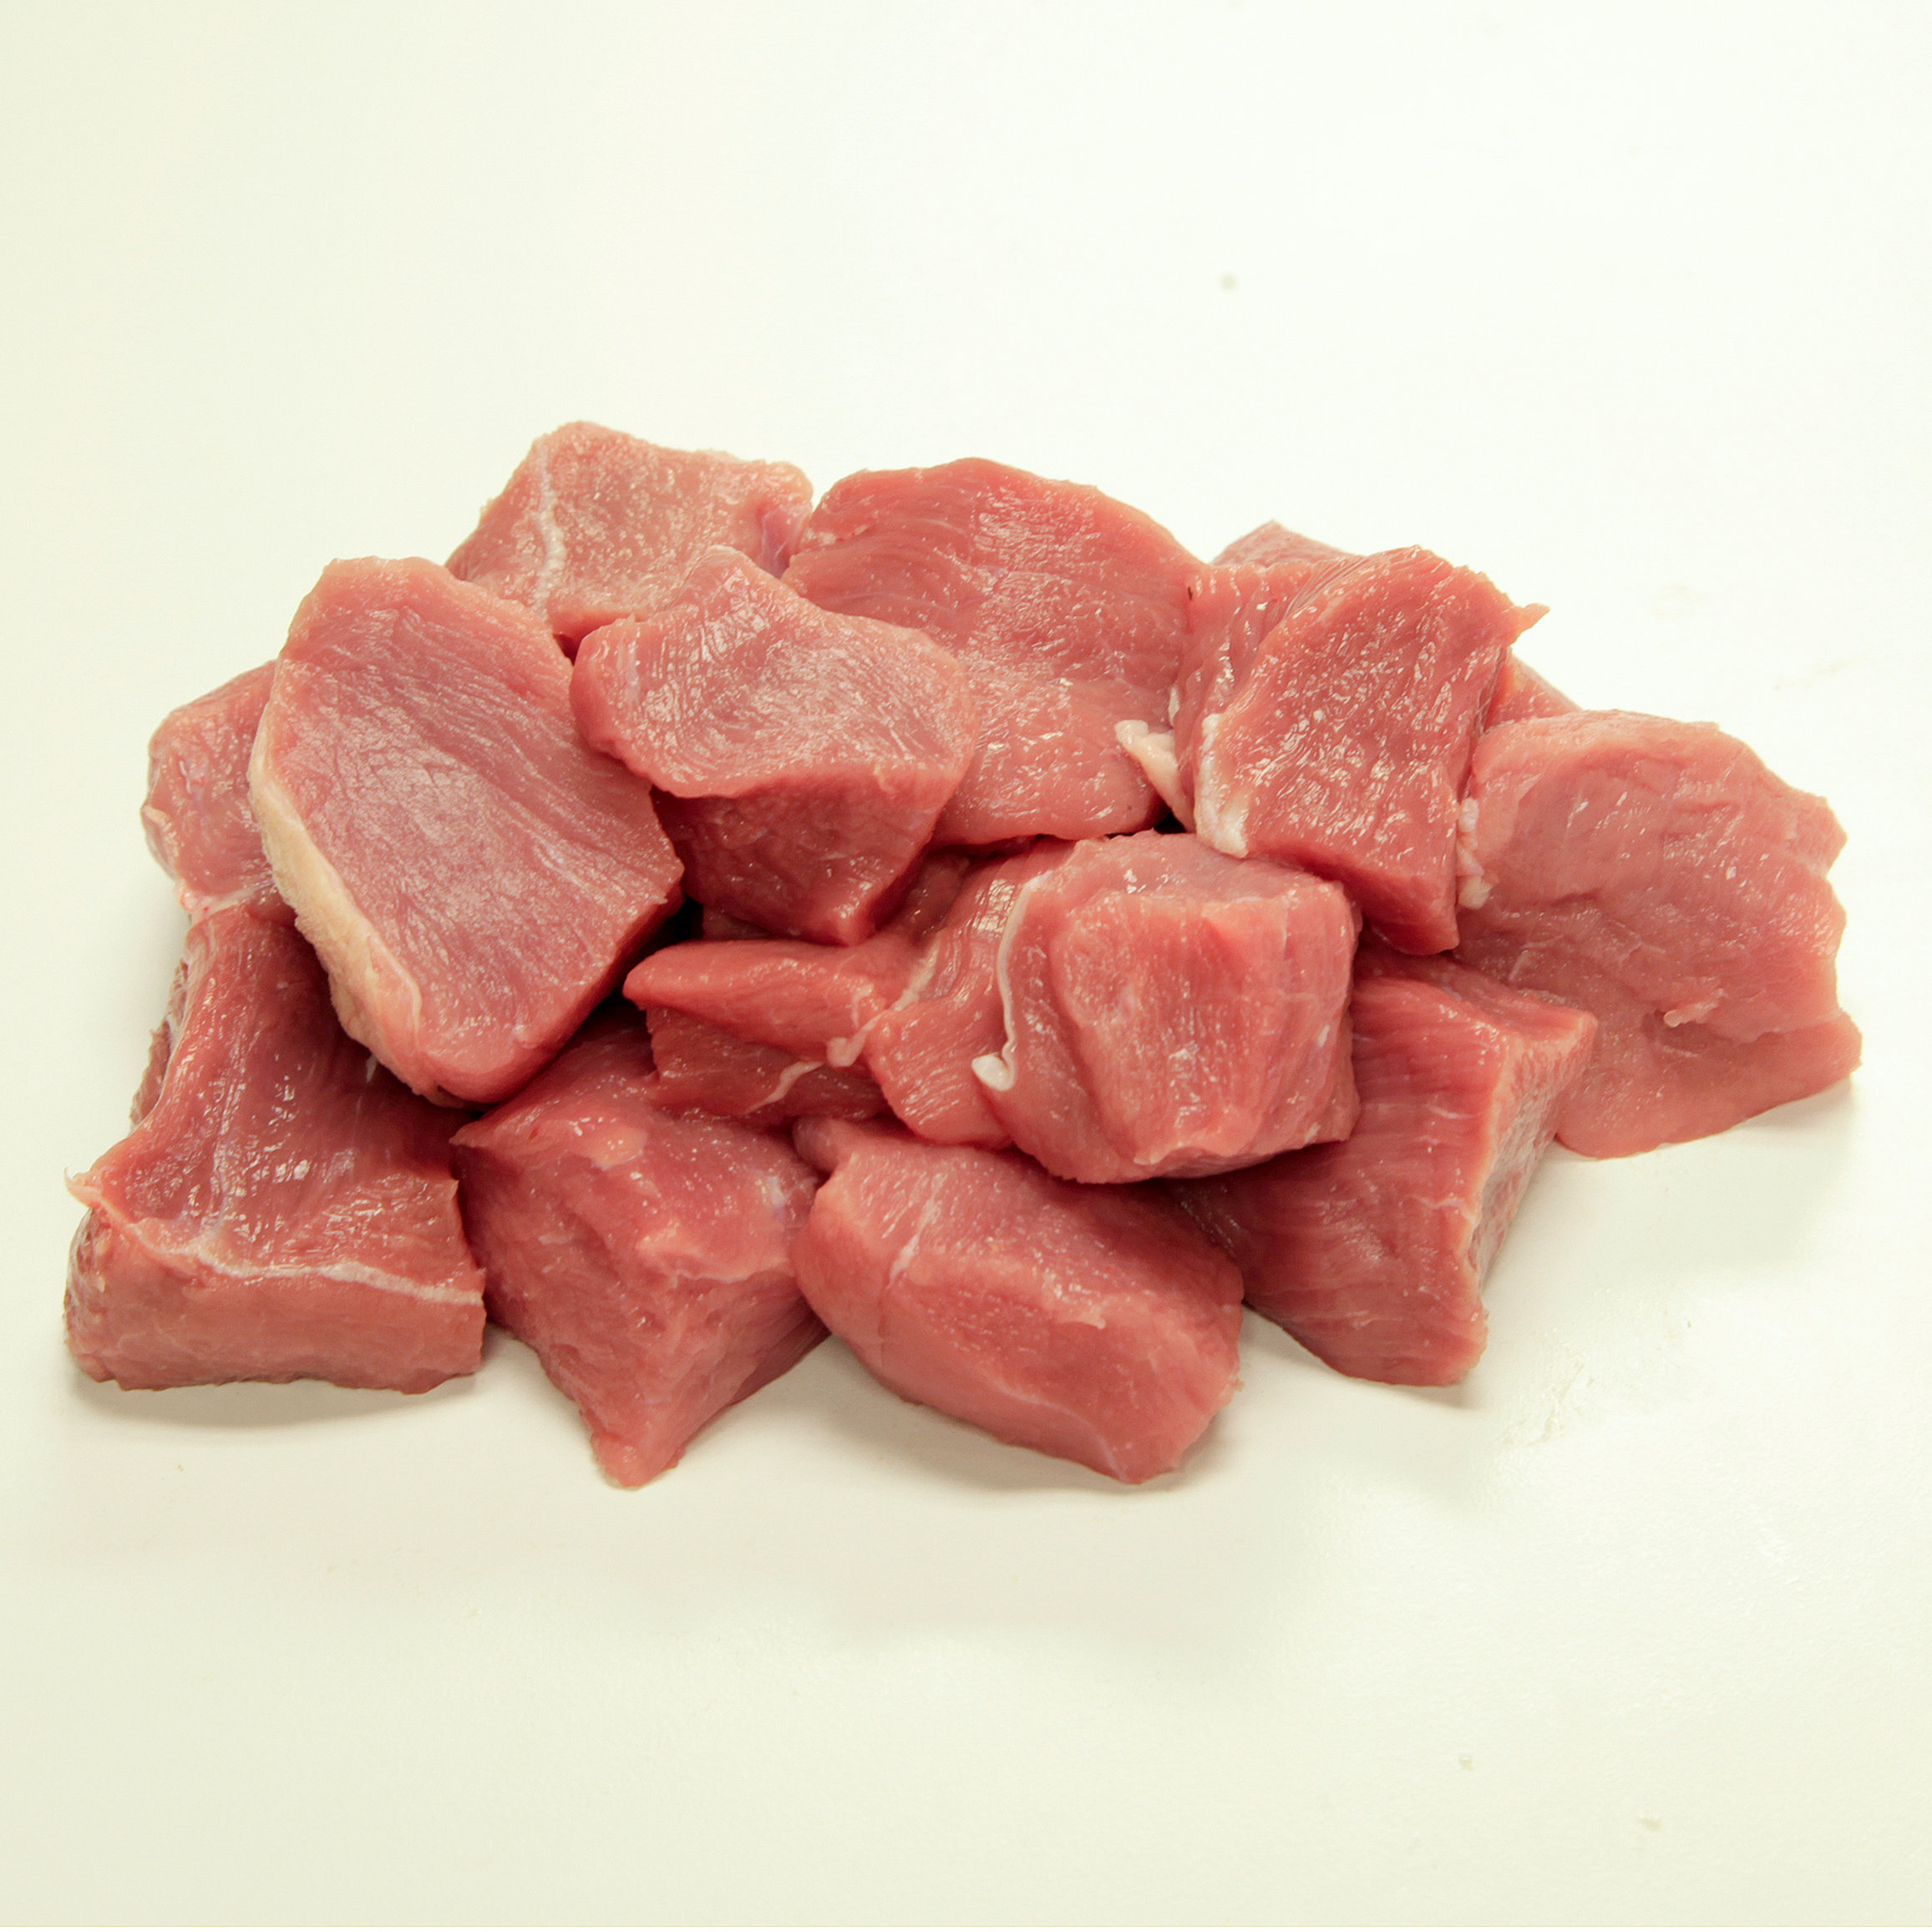 Veal Stew Meat, 1 lb. 00010